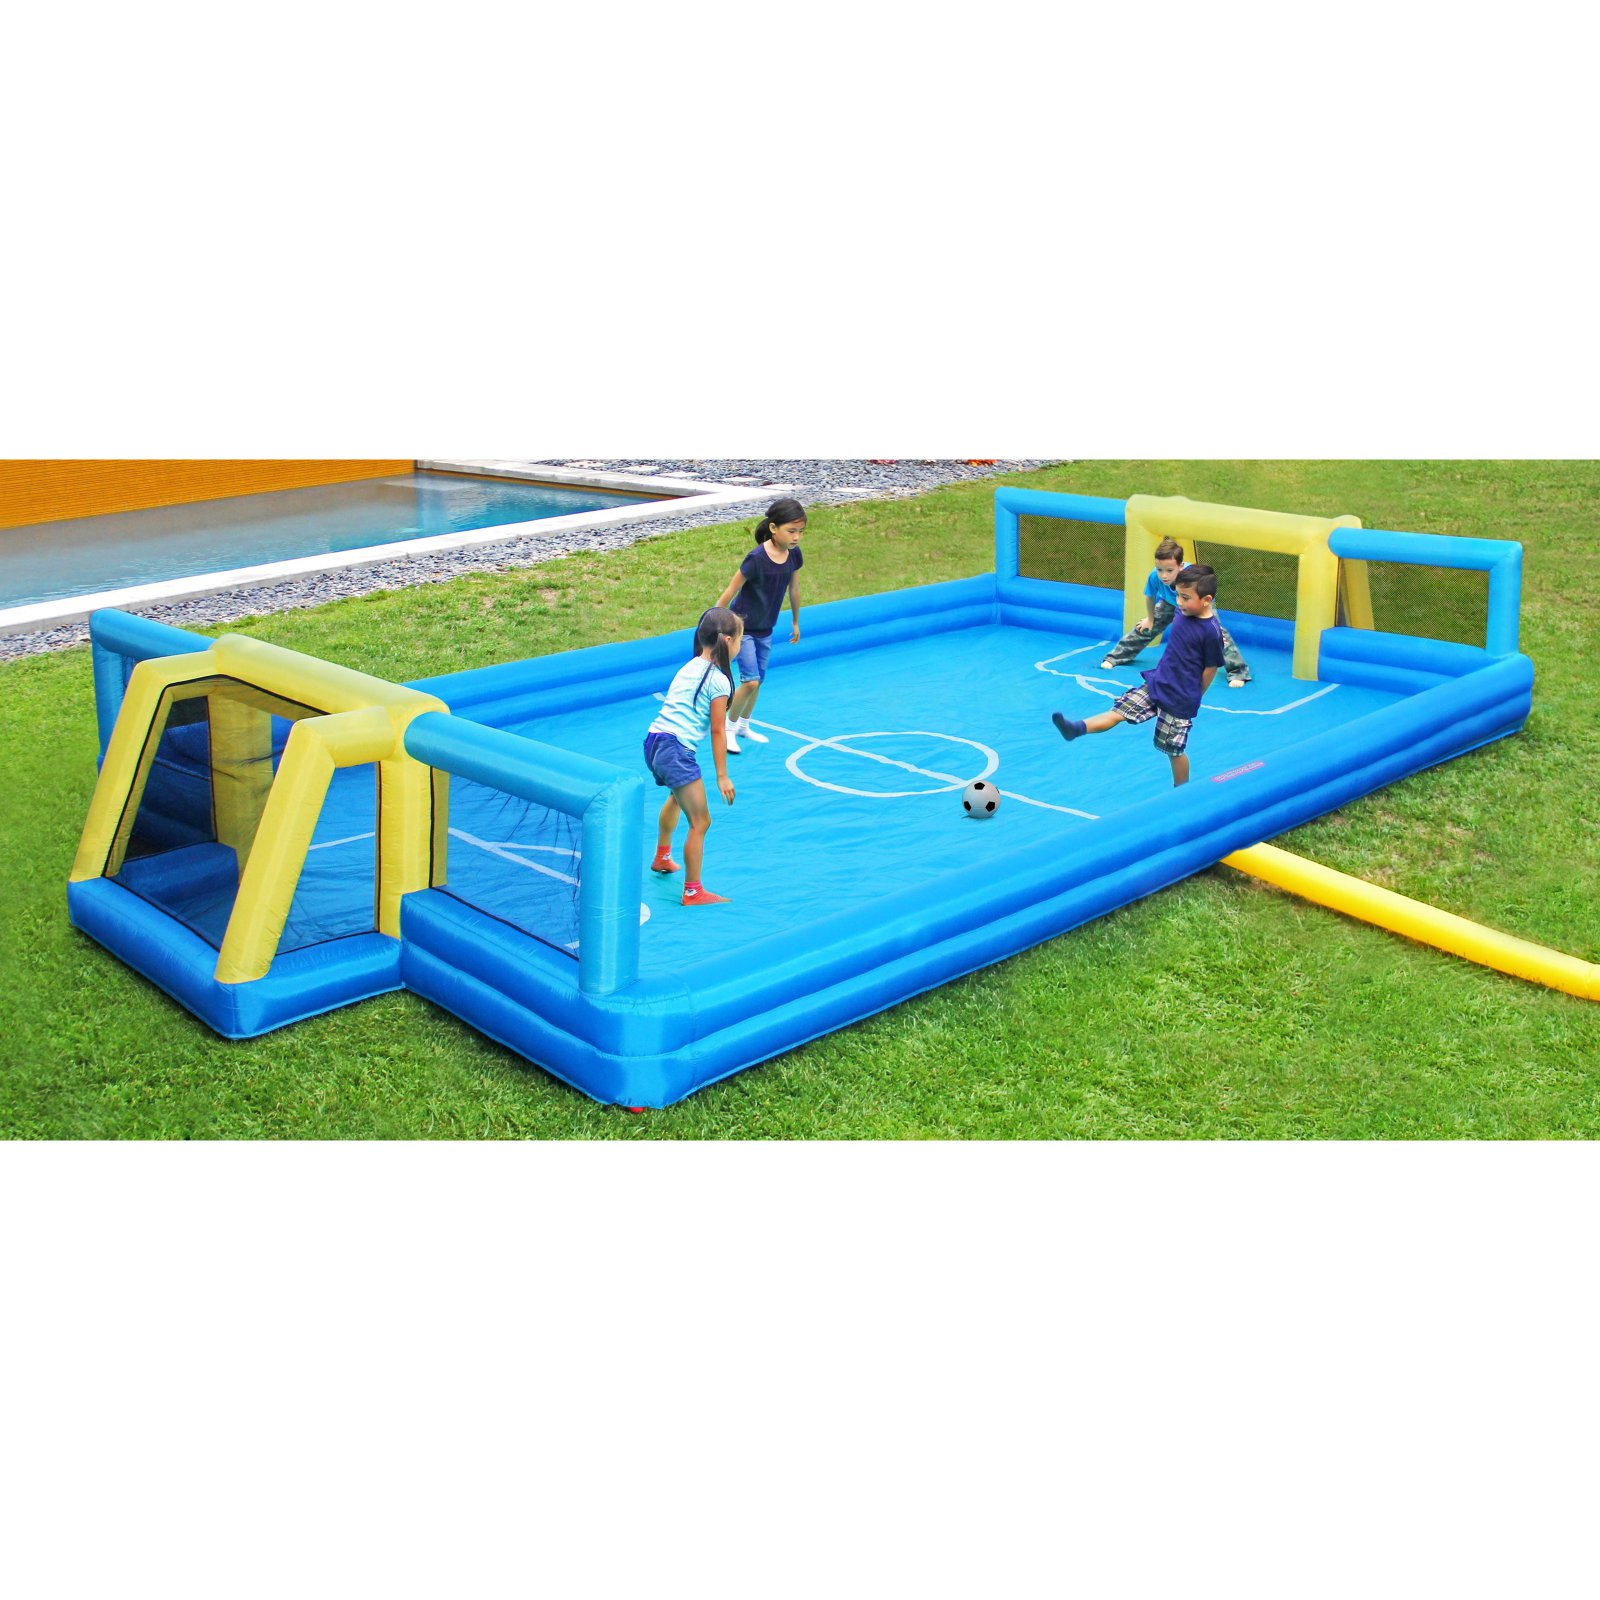 Sportspower Inflatable Soccer Field with 2 Soccer Goals